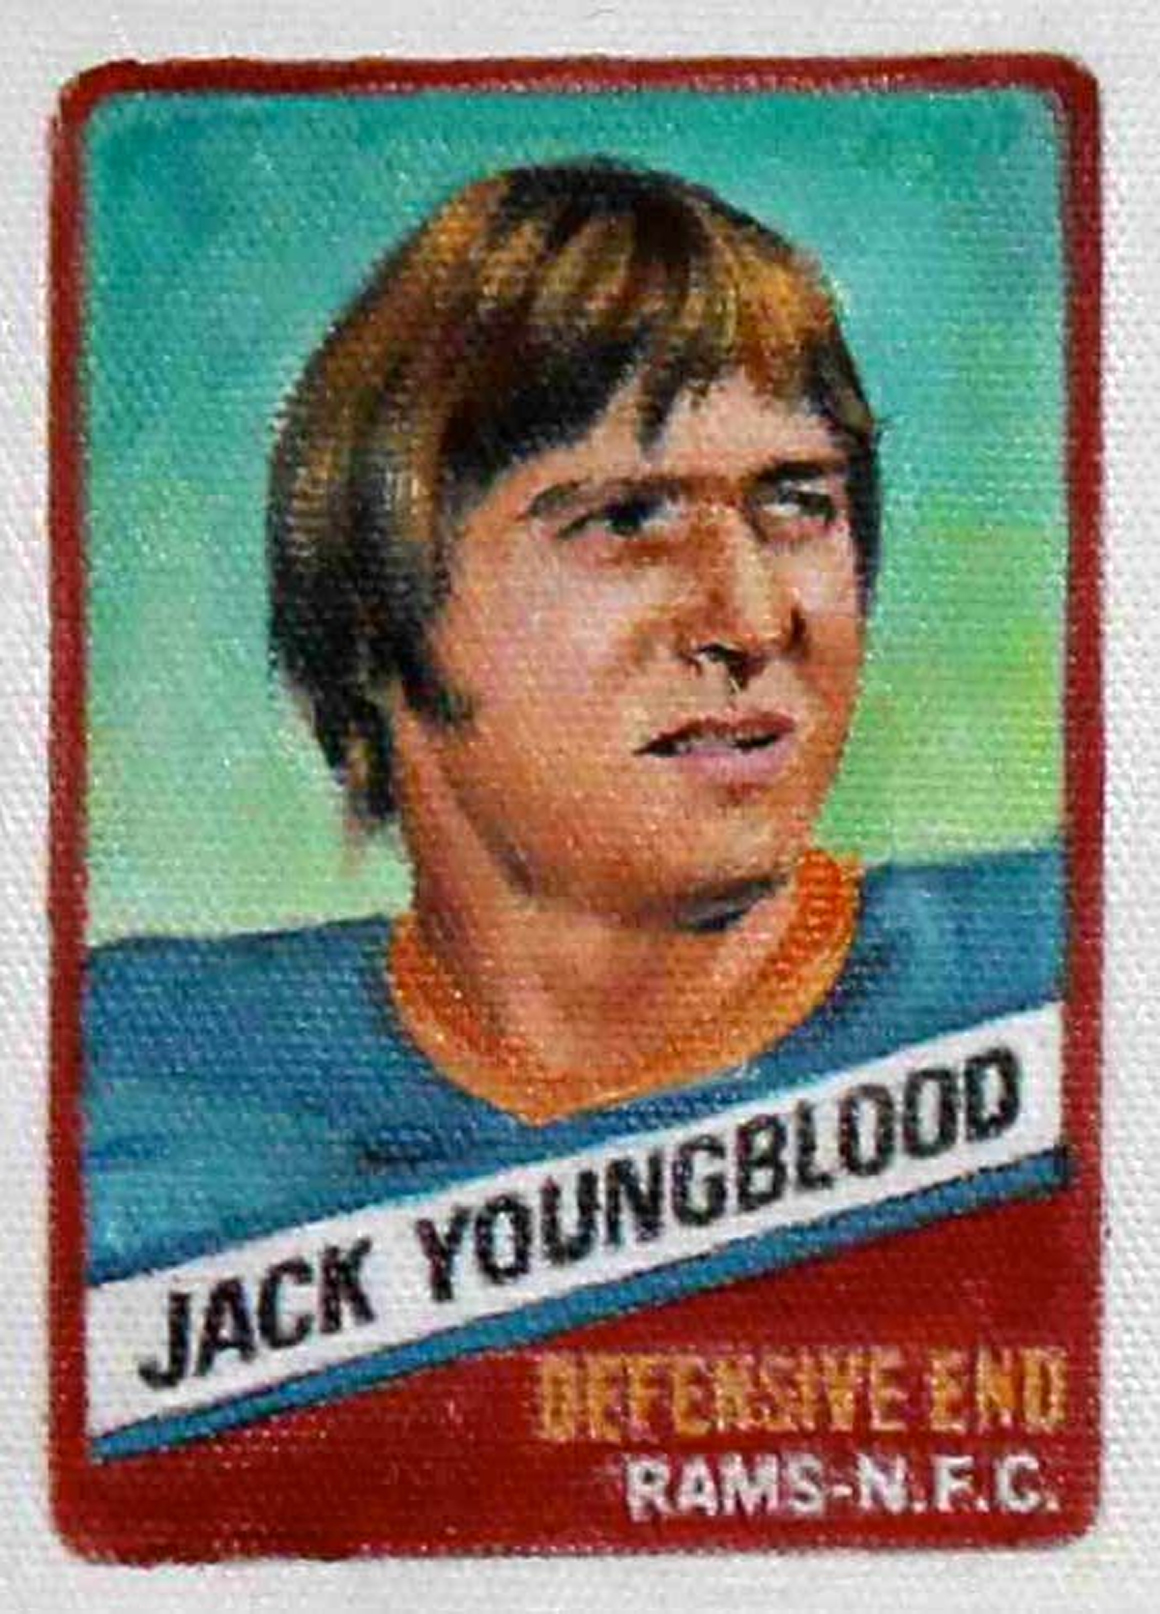 "<p><span class=""name"">Jim Thompson</span><br><em>Jack Youngblood (1977 series)</em><span class='media'>oil on canvas</span>4 x 3 in (10.2 x 7.6 cm)<br>2012<br></p>"